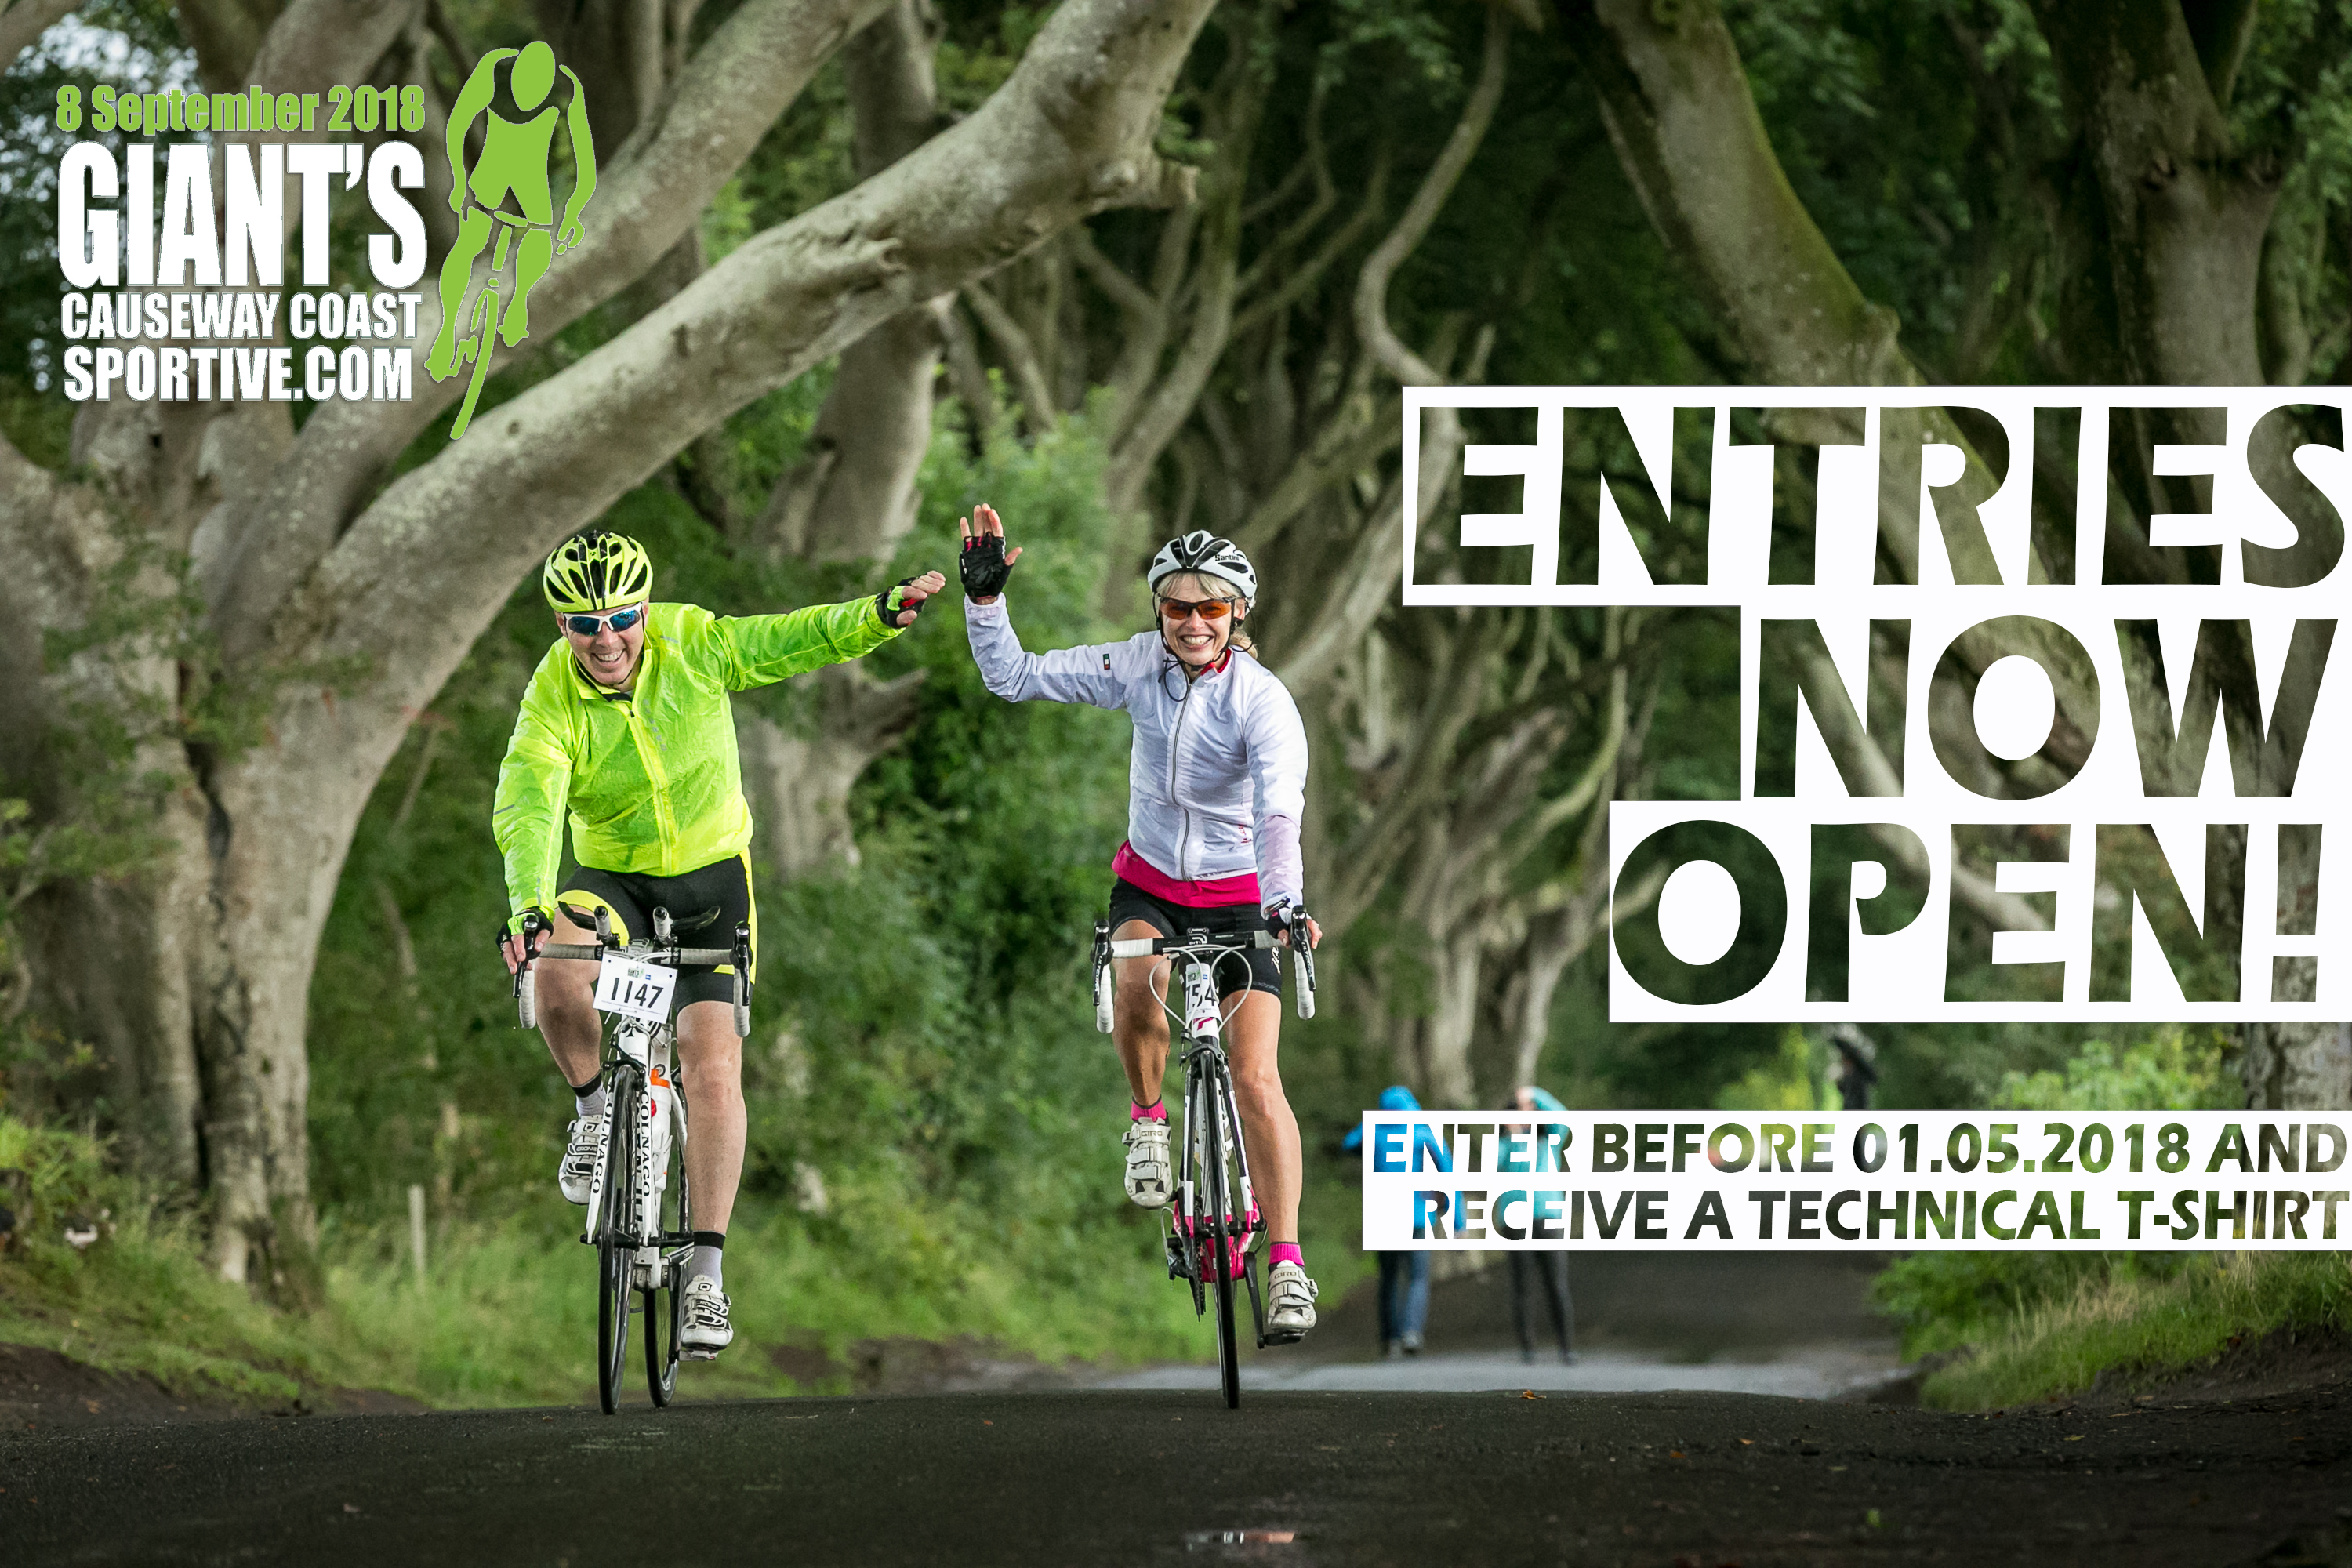 Two riders cycling through the Dark Hedges during the Giant's Causeway Coast Sportive